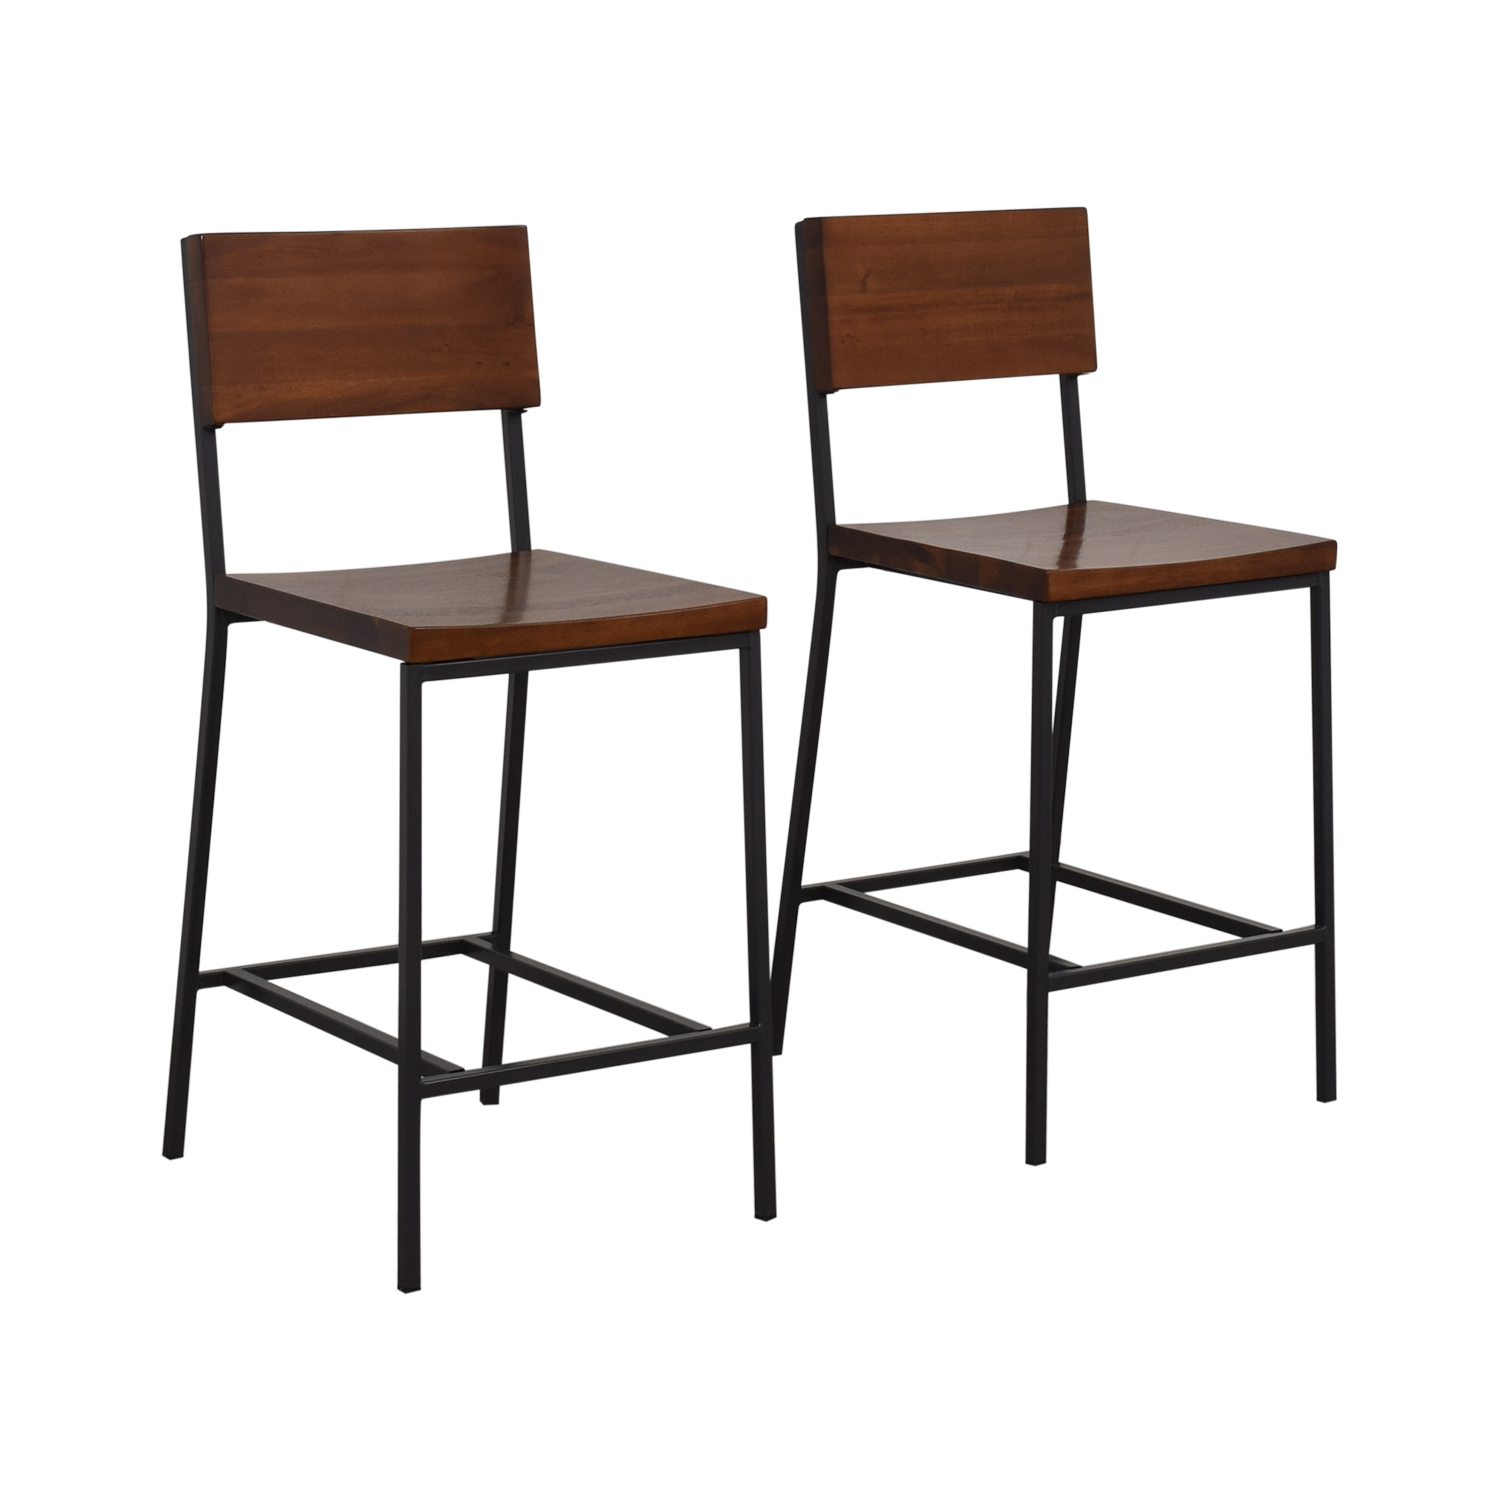 West Elm Rustic Counter Stool / Chairs